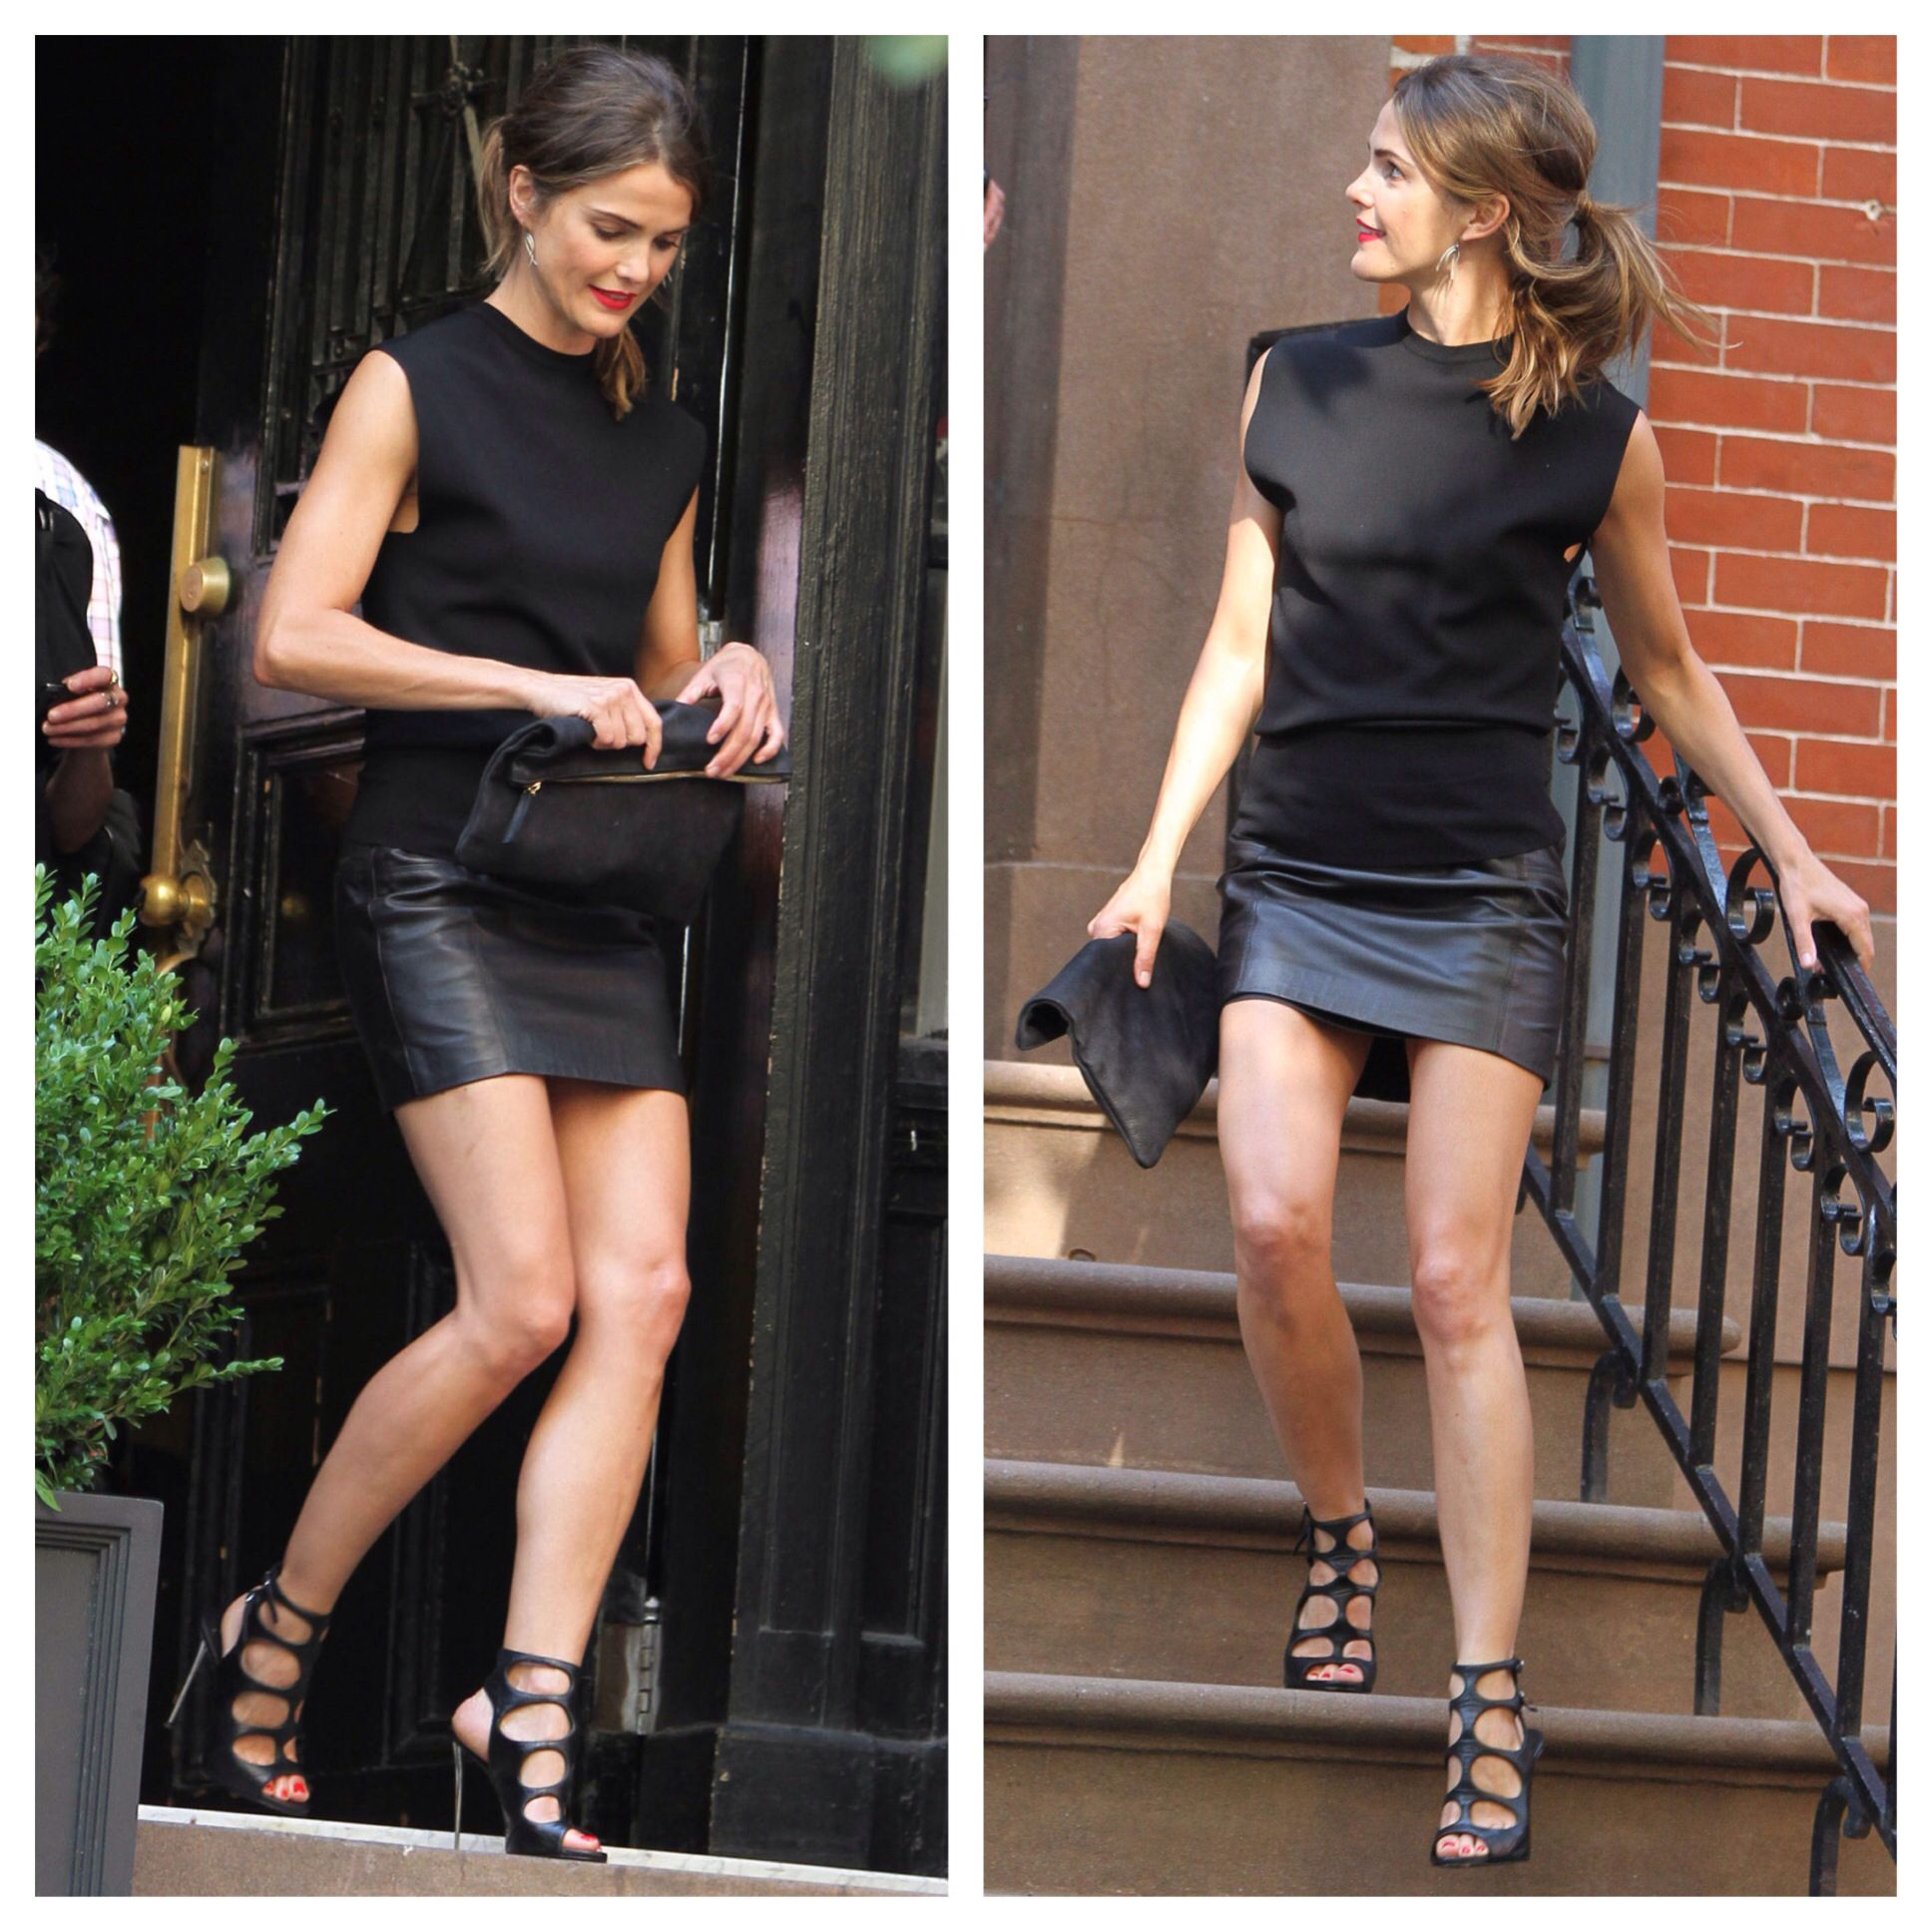 Keri Russell Such a hot look, but I would have nowhere to wear it.